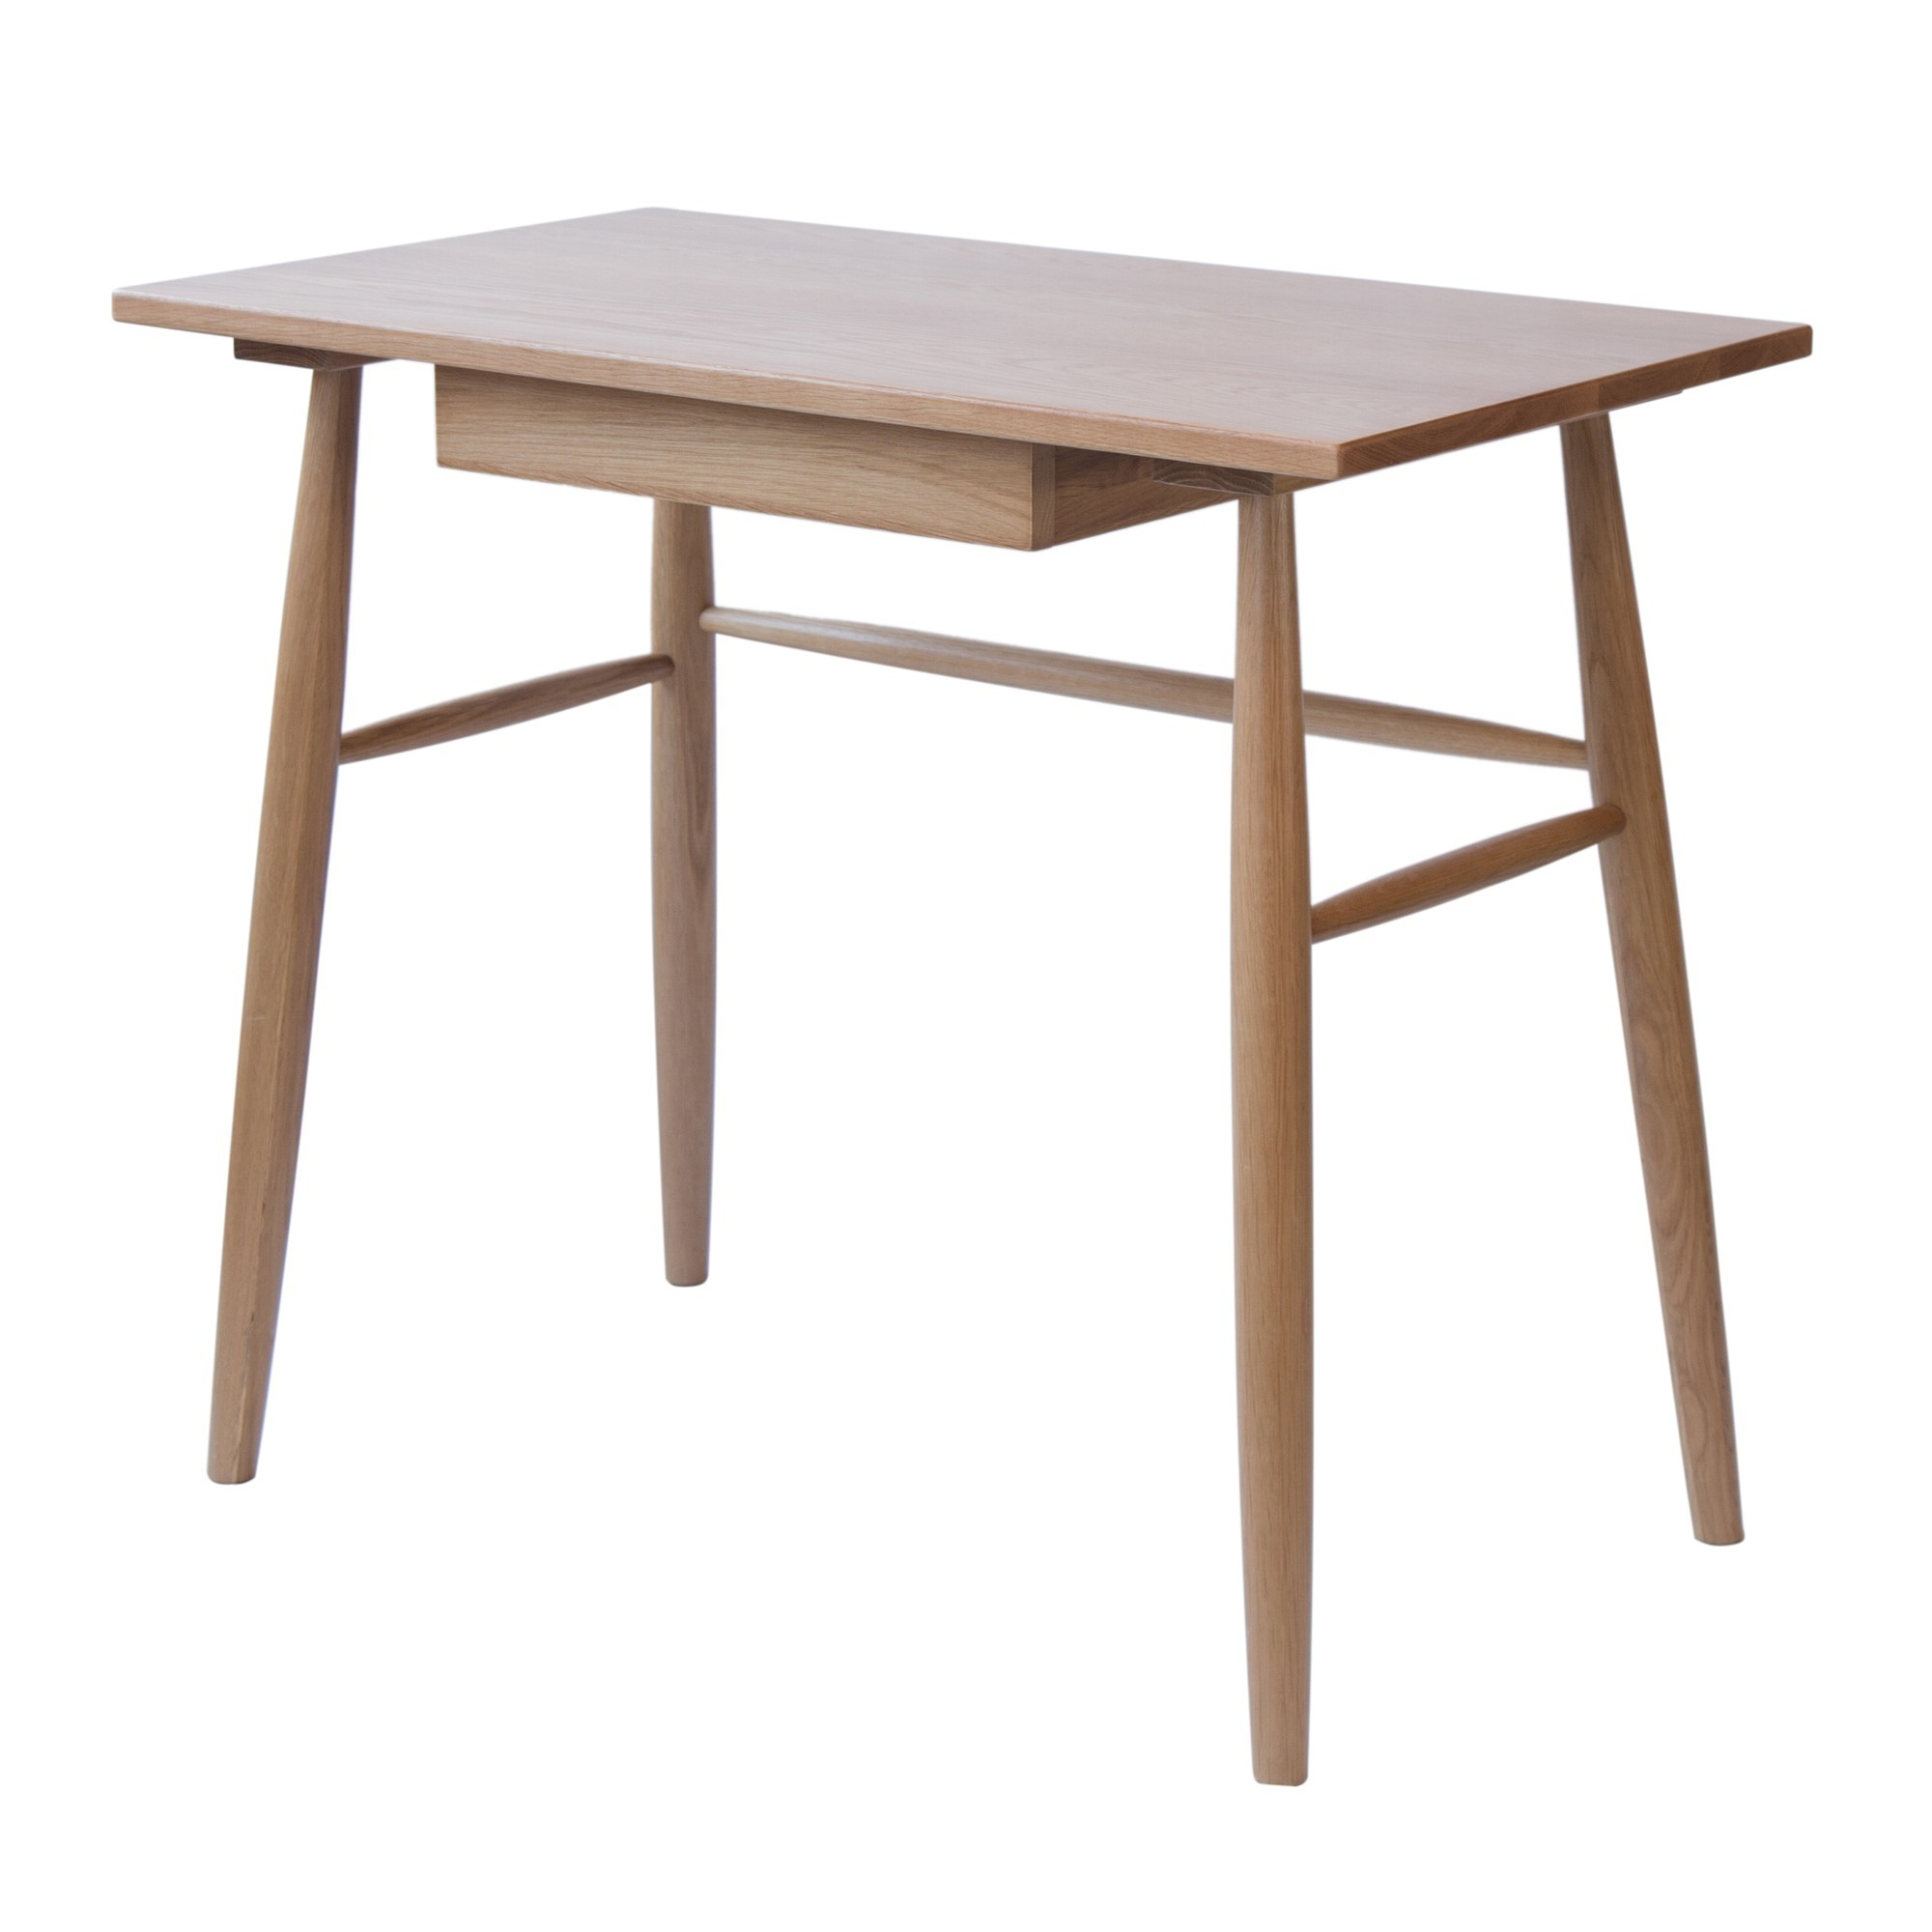 Cherise Oak Timber Desk, 90cm